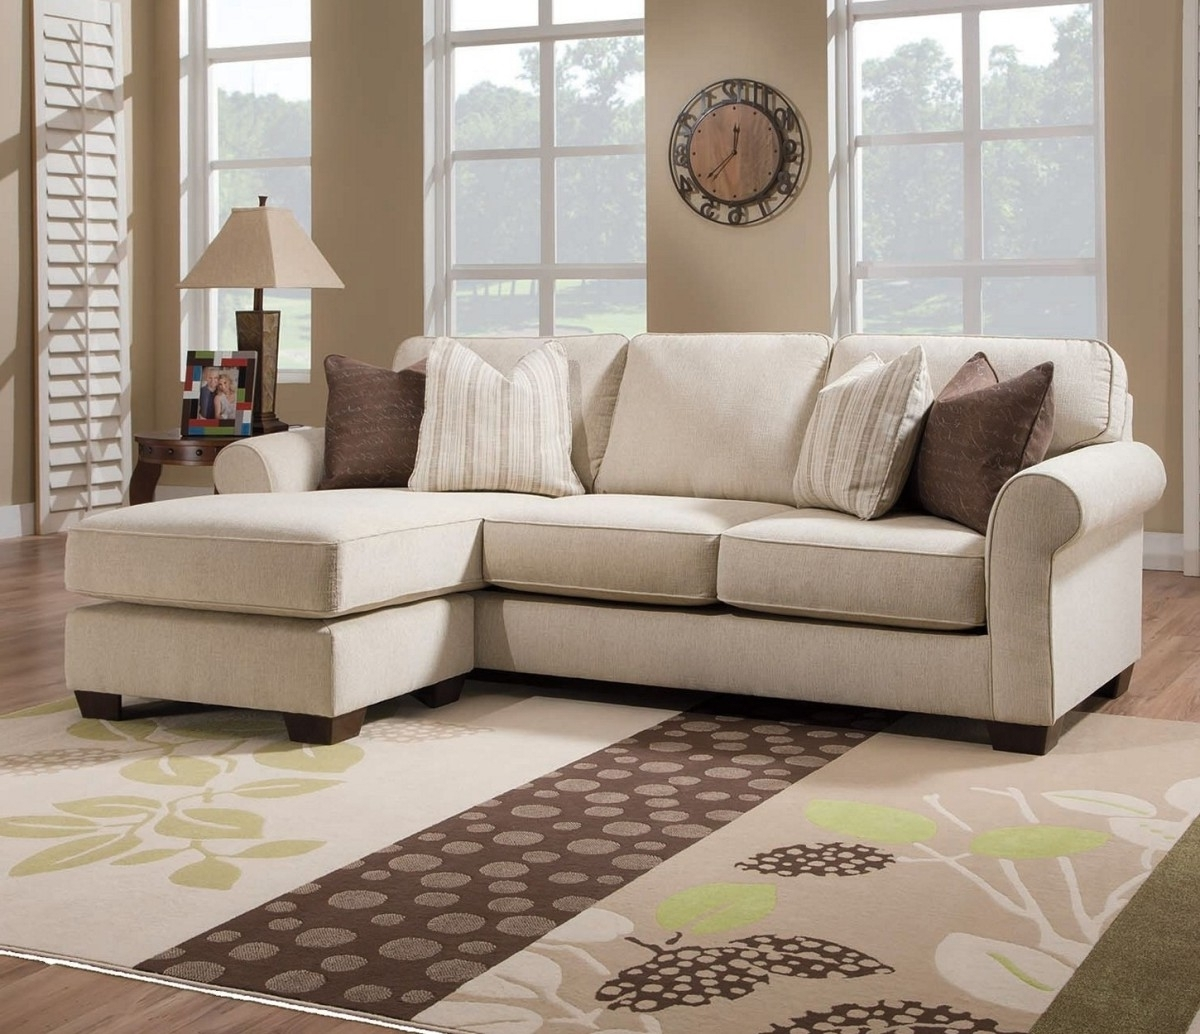 Sectional Sofas At Charlotte Nc Intended For Most Popular Ethan Allen Charlotte Nc Modern Italian Leather Sofa Ethan Allen (View 16 of 20)